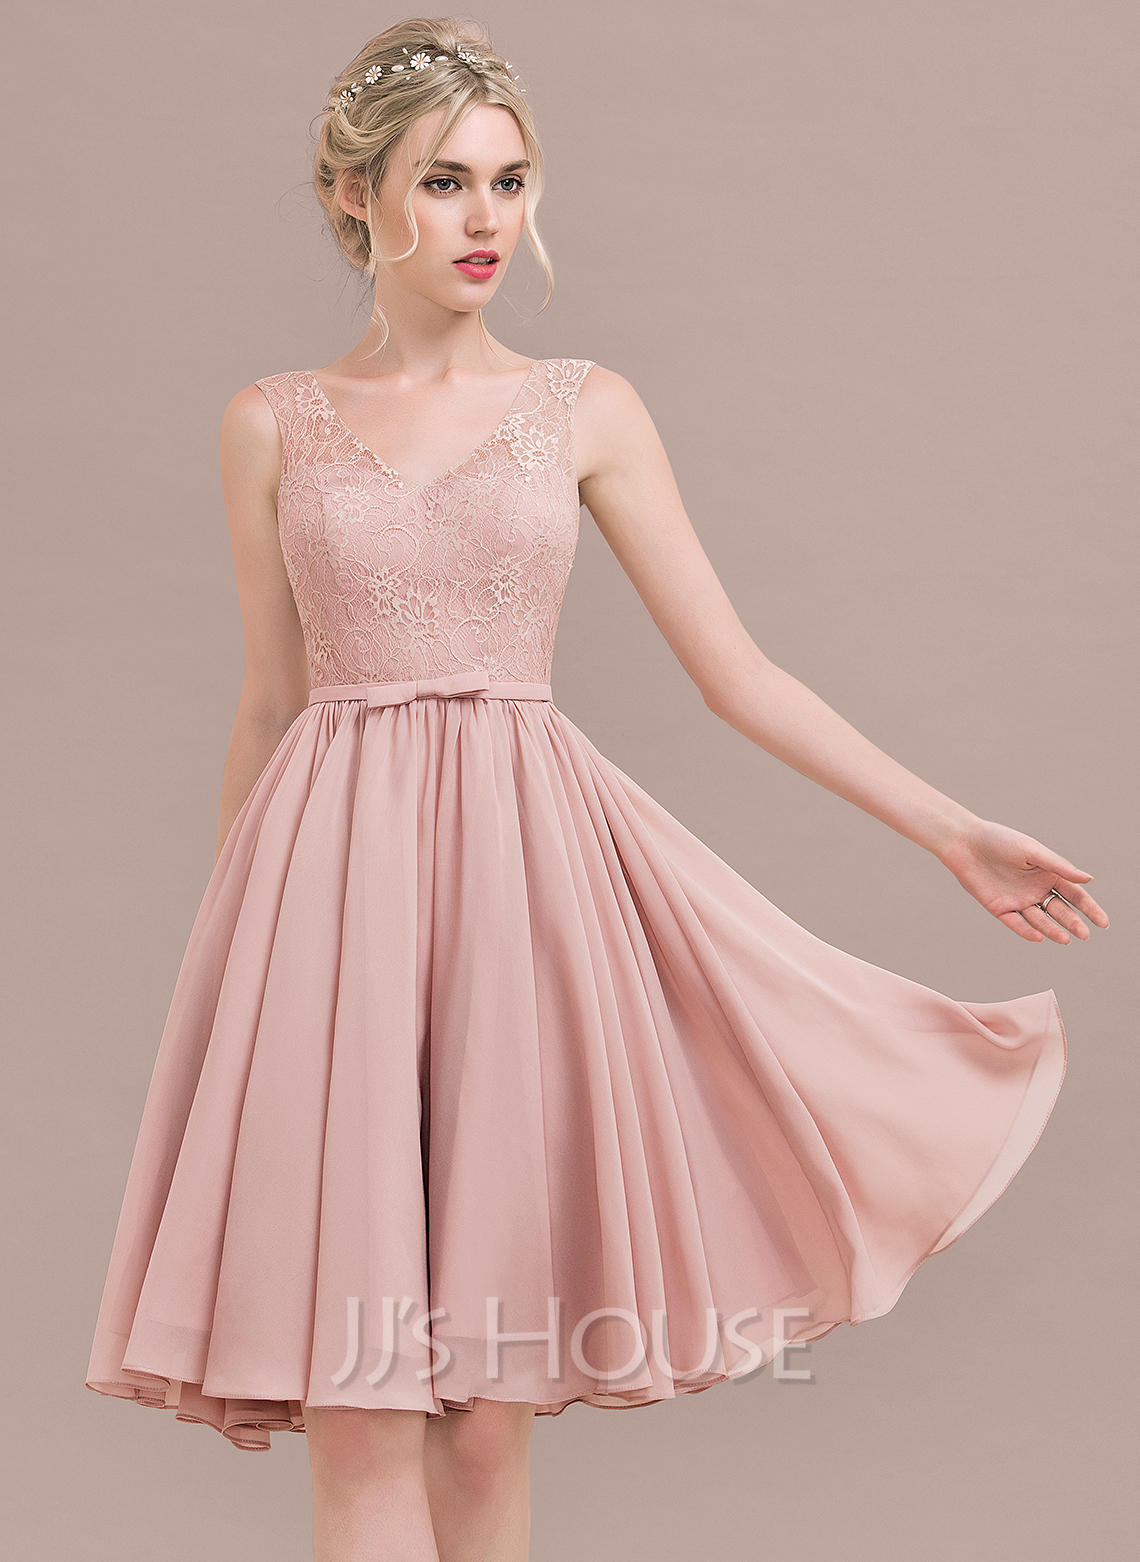 05de19be8aeb A-Line/Princess V-neck Knee-Length Chiffon Lace Cocktail Dress With.  Loading zoom